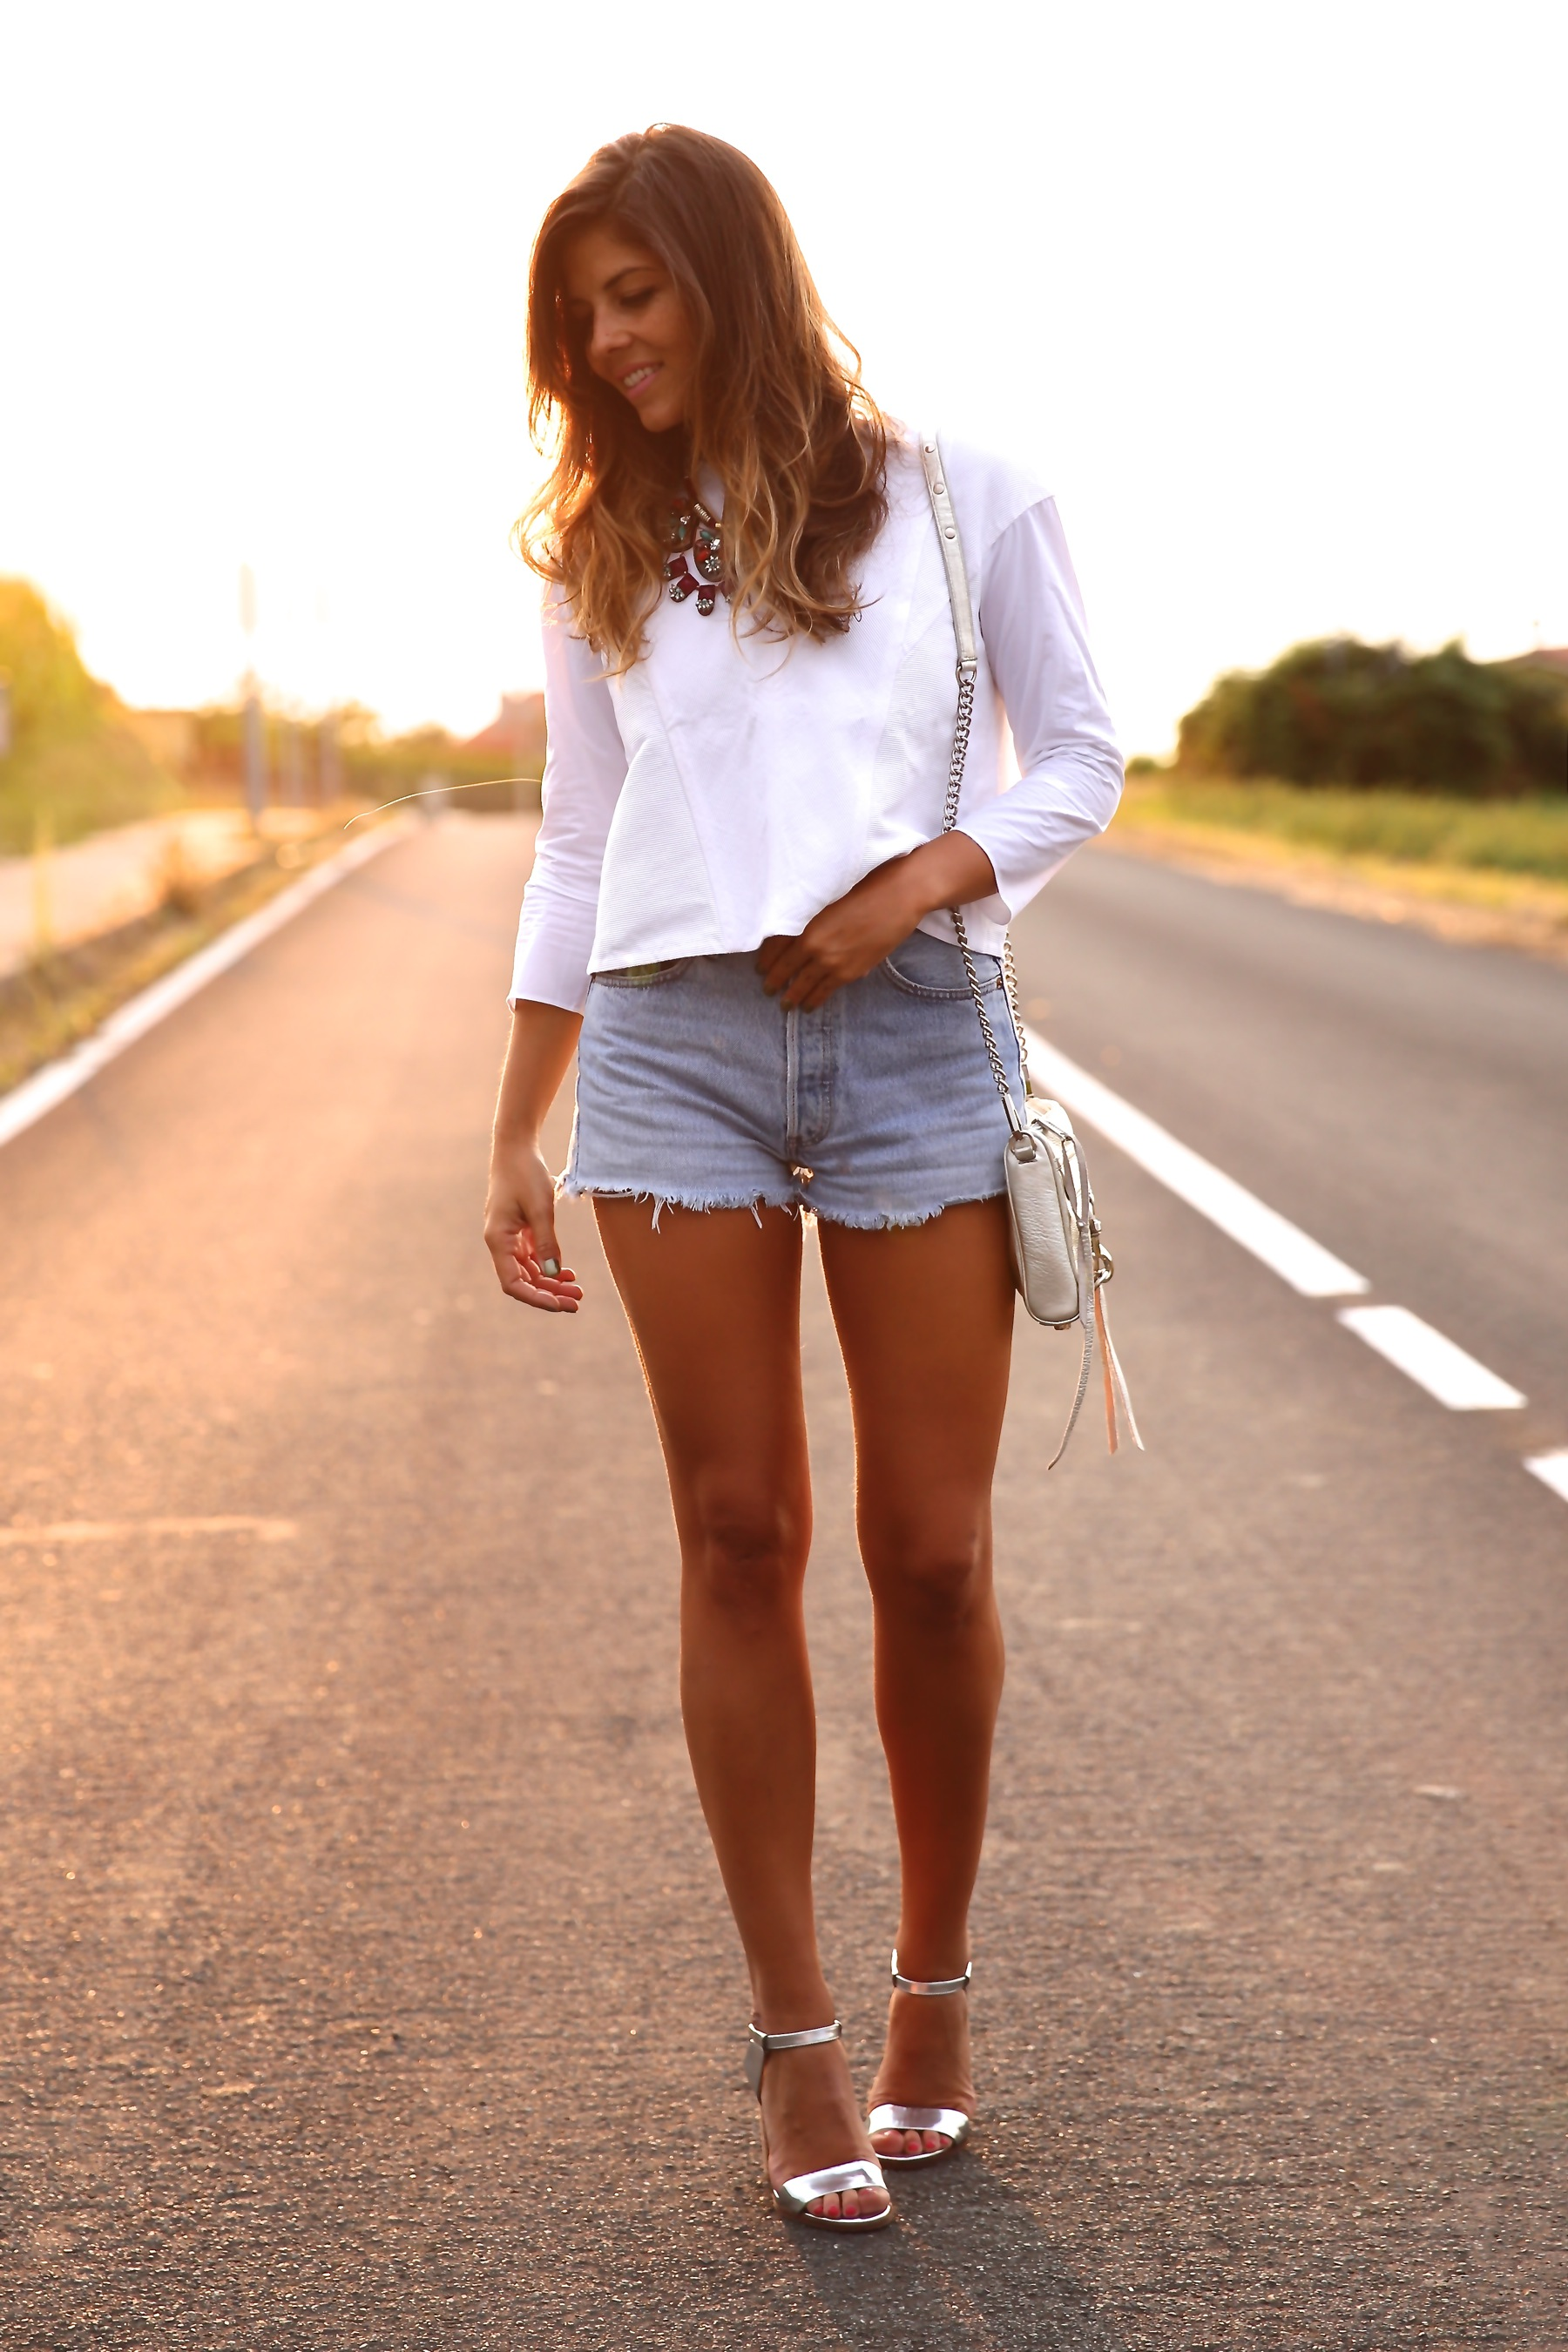 trendy_taste-look-outfit-street_style-ootd-blog-blogger-fashion_spain-moda_españa-coach-silver_sandals-sandalias_plata-white_top-top_blanco-levi's-denim_shorts-shorts_vaqueros-15